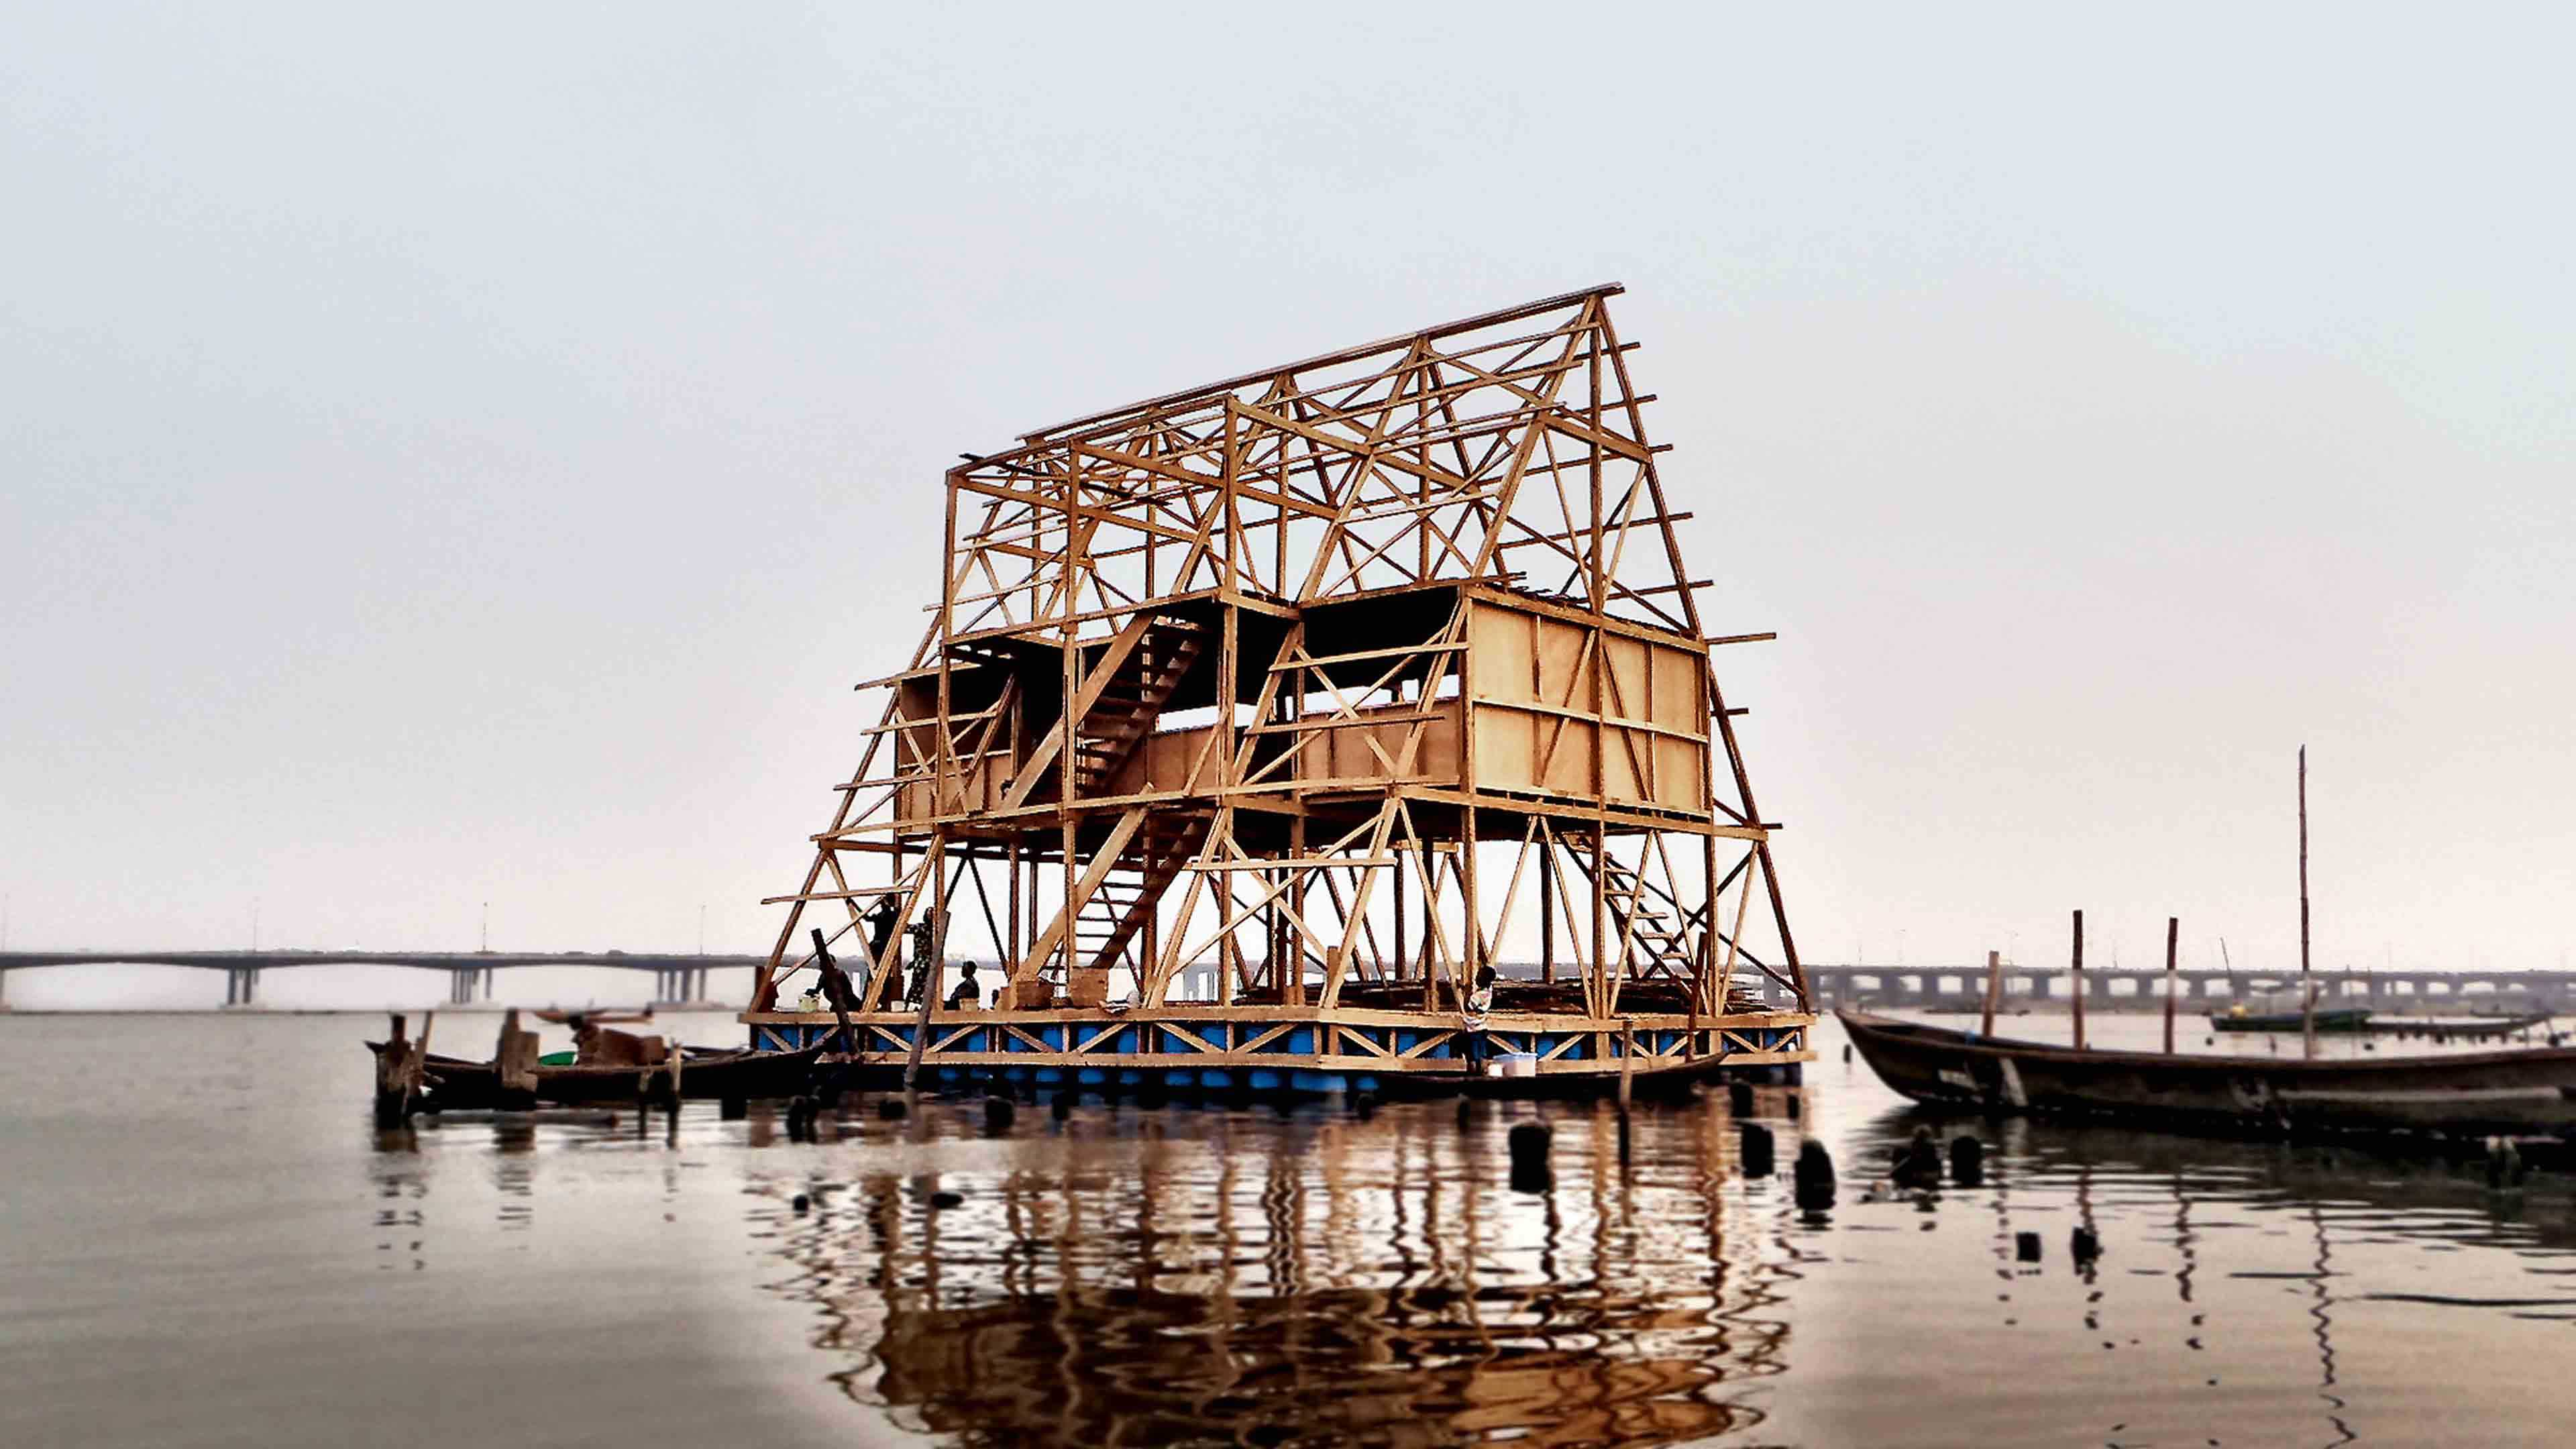 NLÉ, Floating School in Nigeria  - NLE 7 43